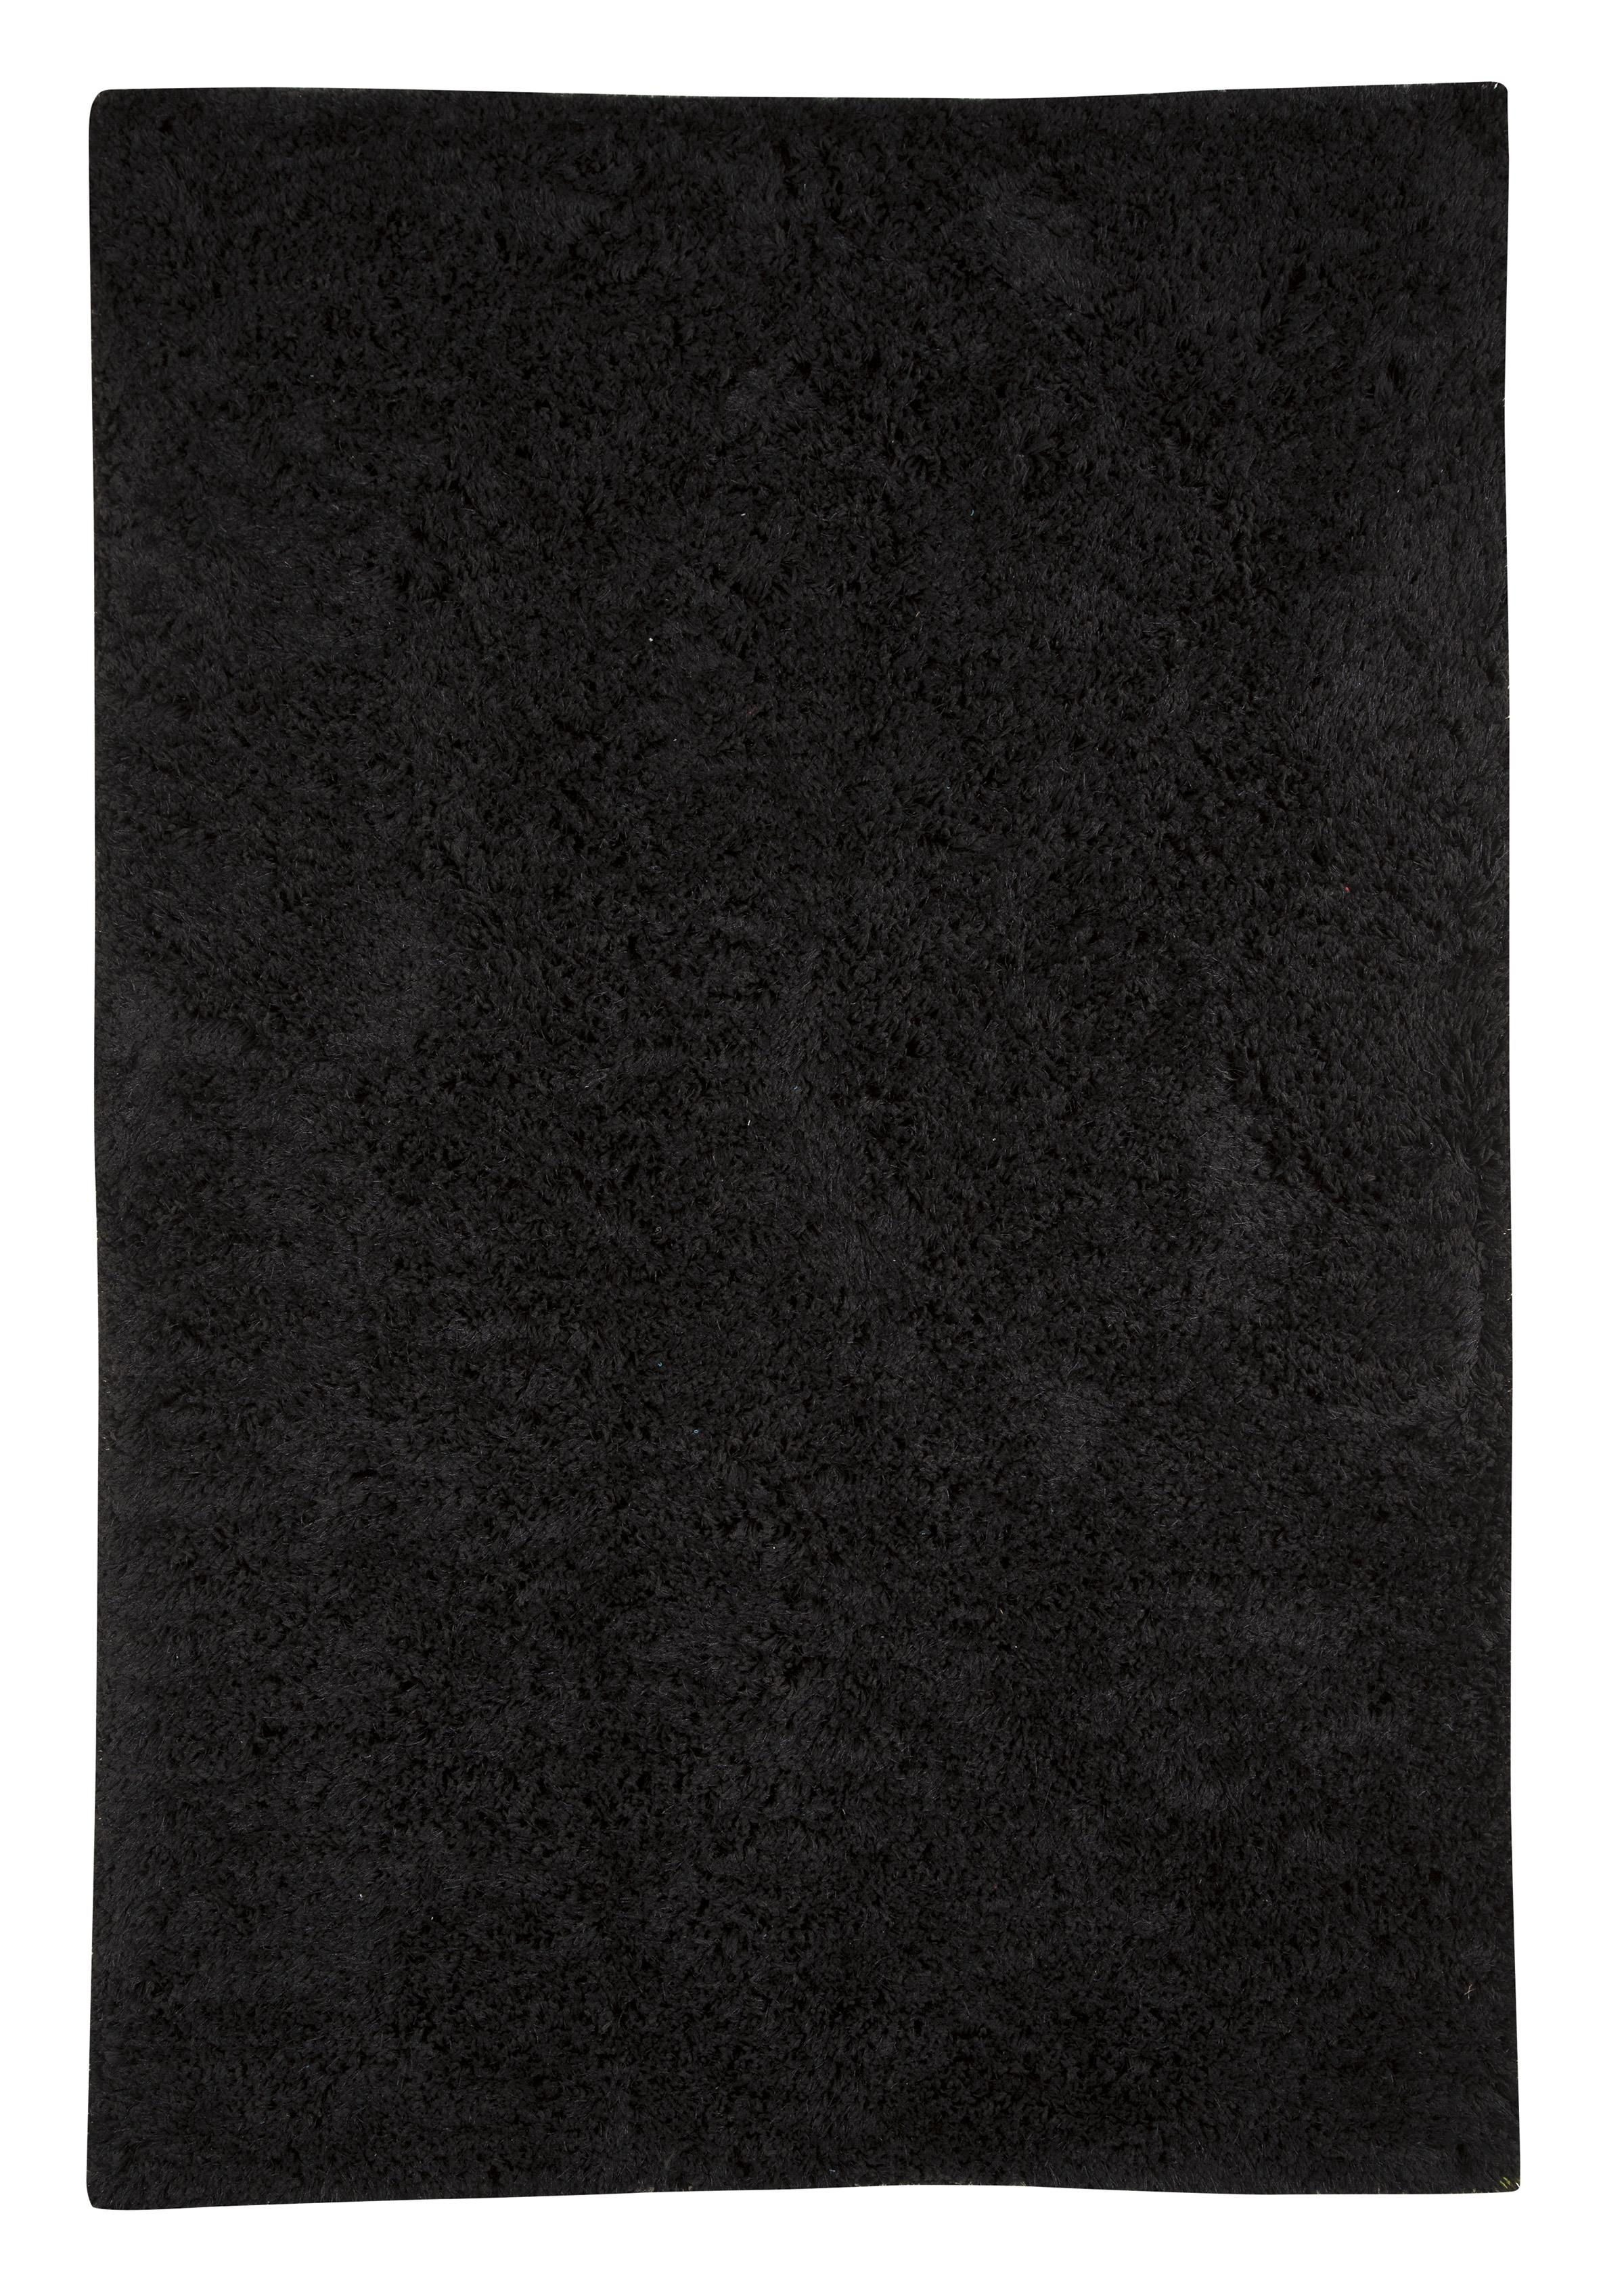 Signature Design by Ashley Transitional Area Rugs Alonso Midnight Medium Rug - Item Number: R400532